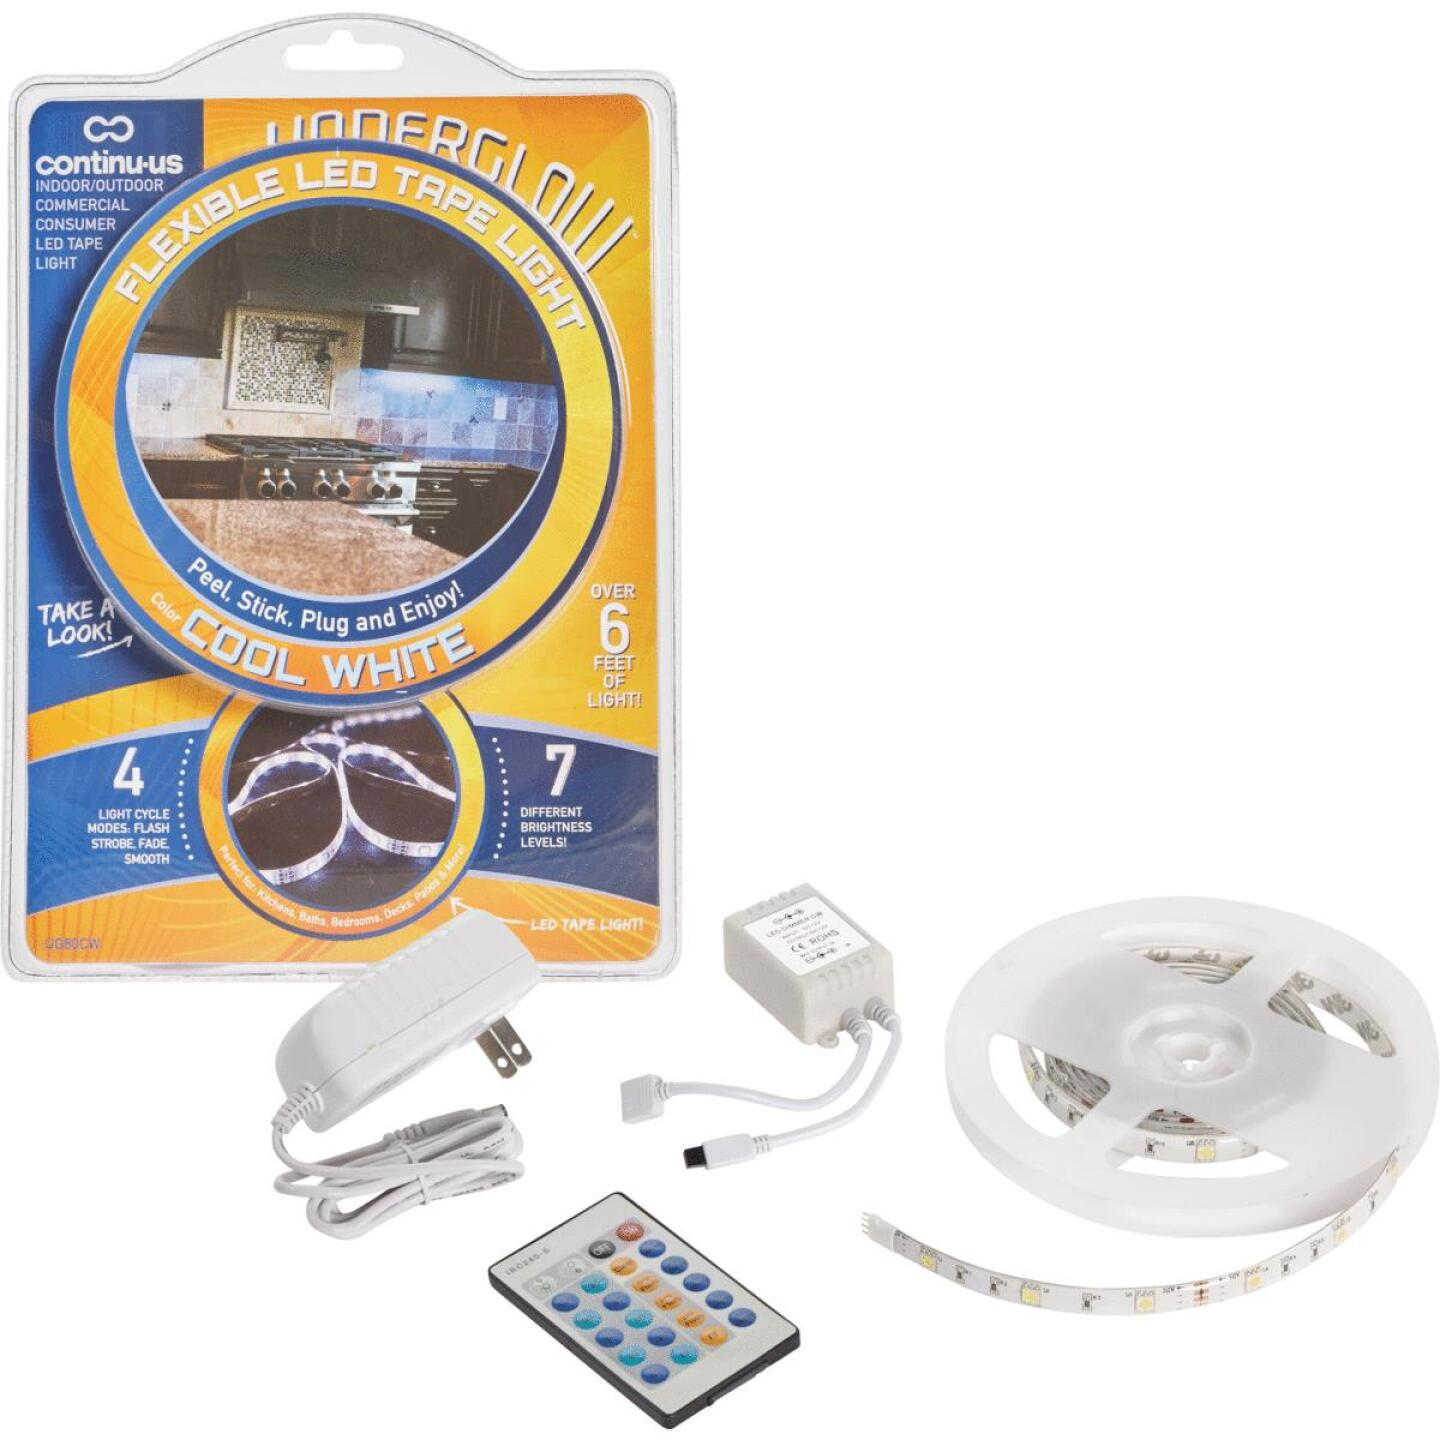 Continu-us Underglow 20 In. Plug-In Cool White LED Under Cabinet Light Image 1